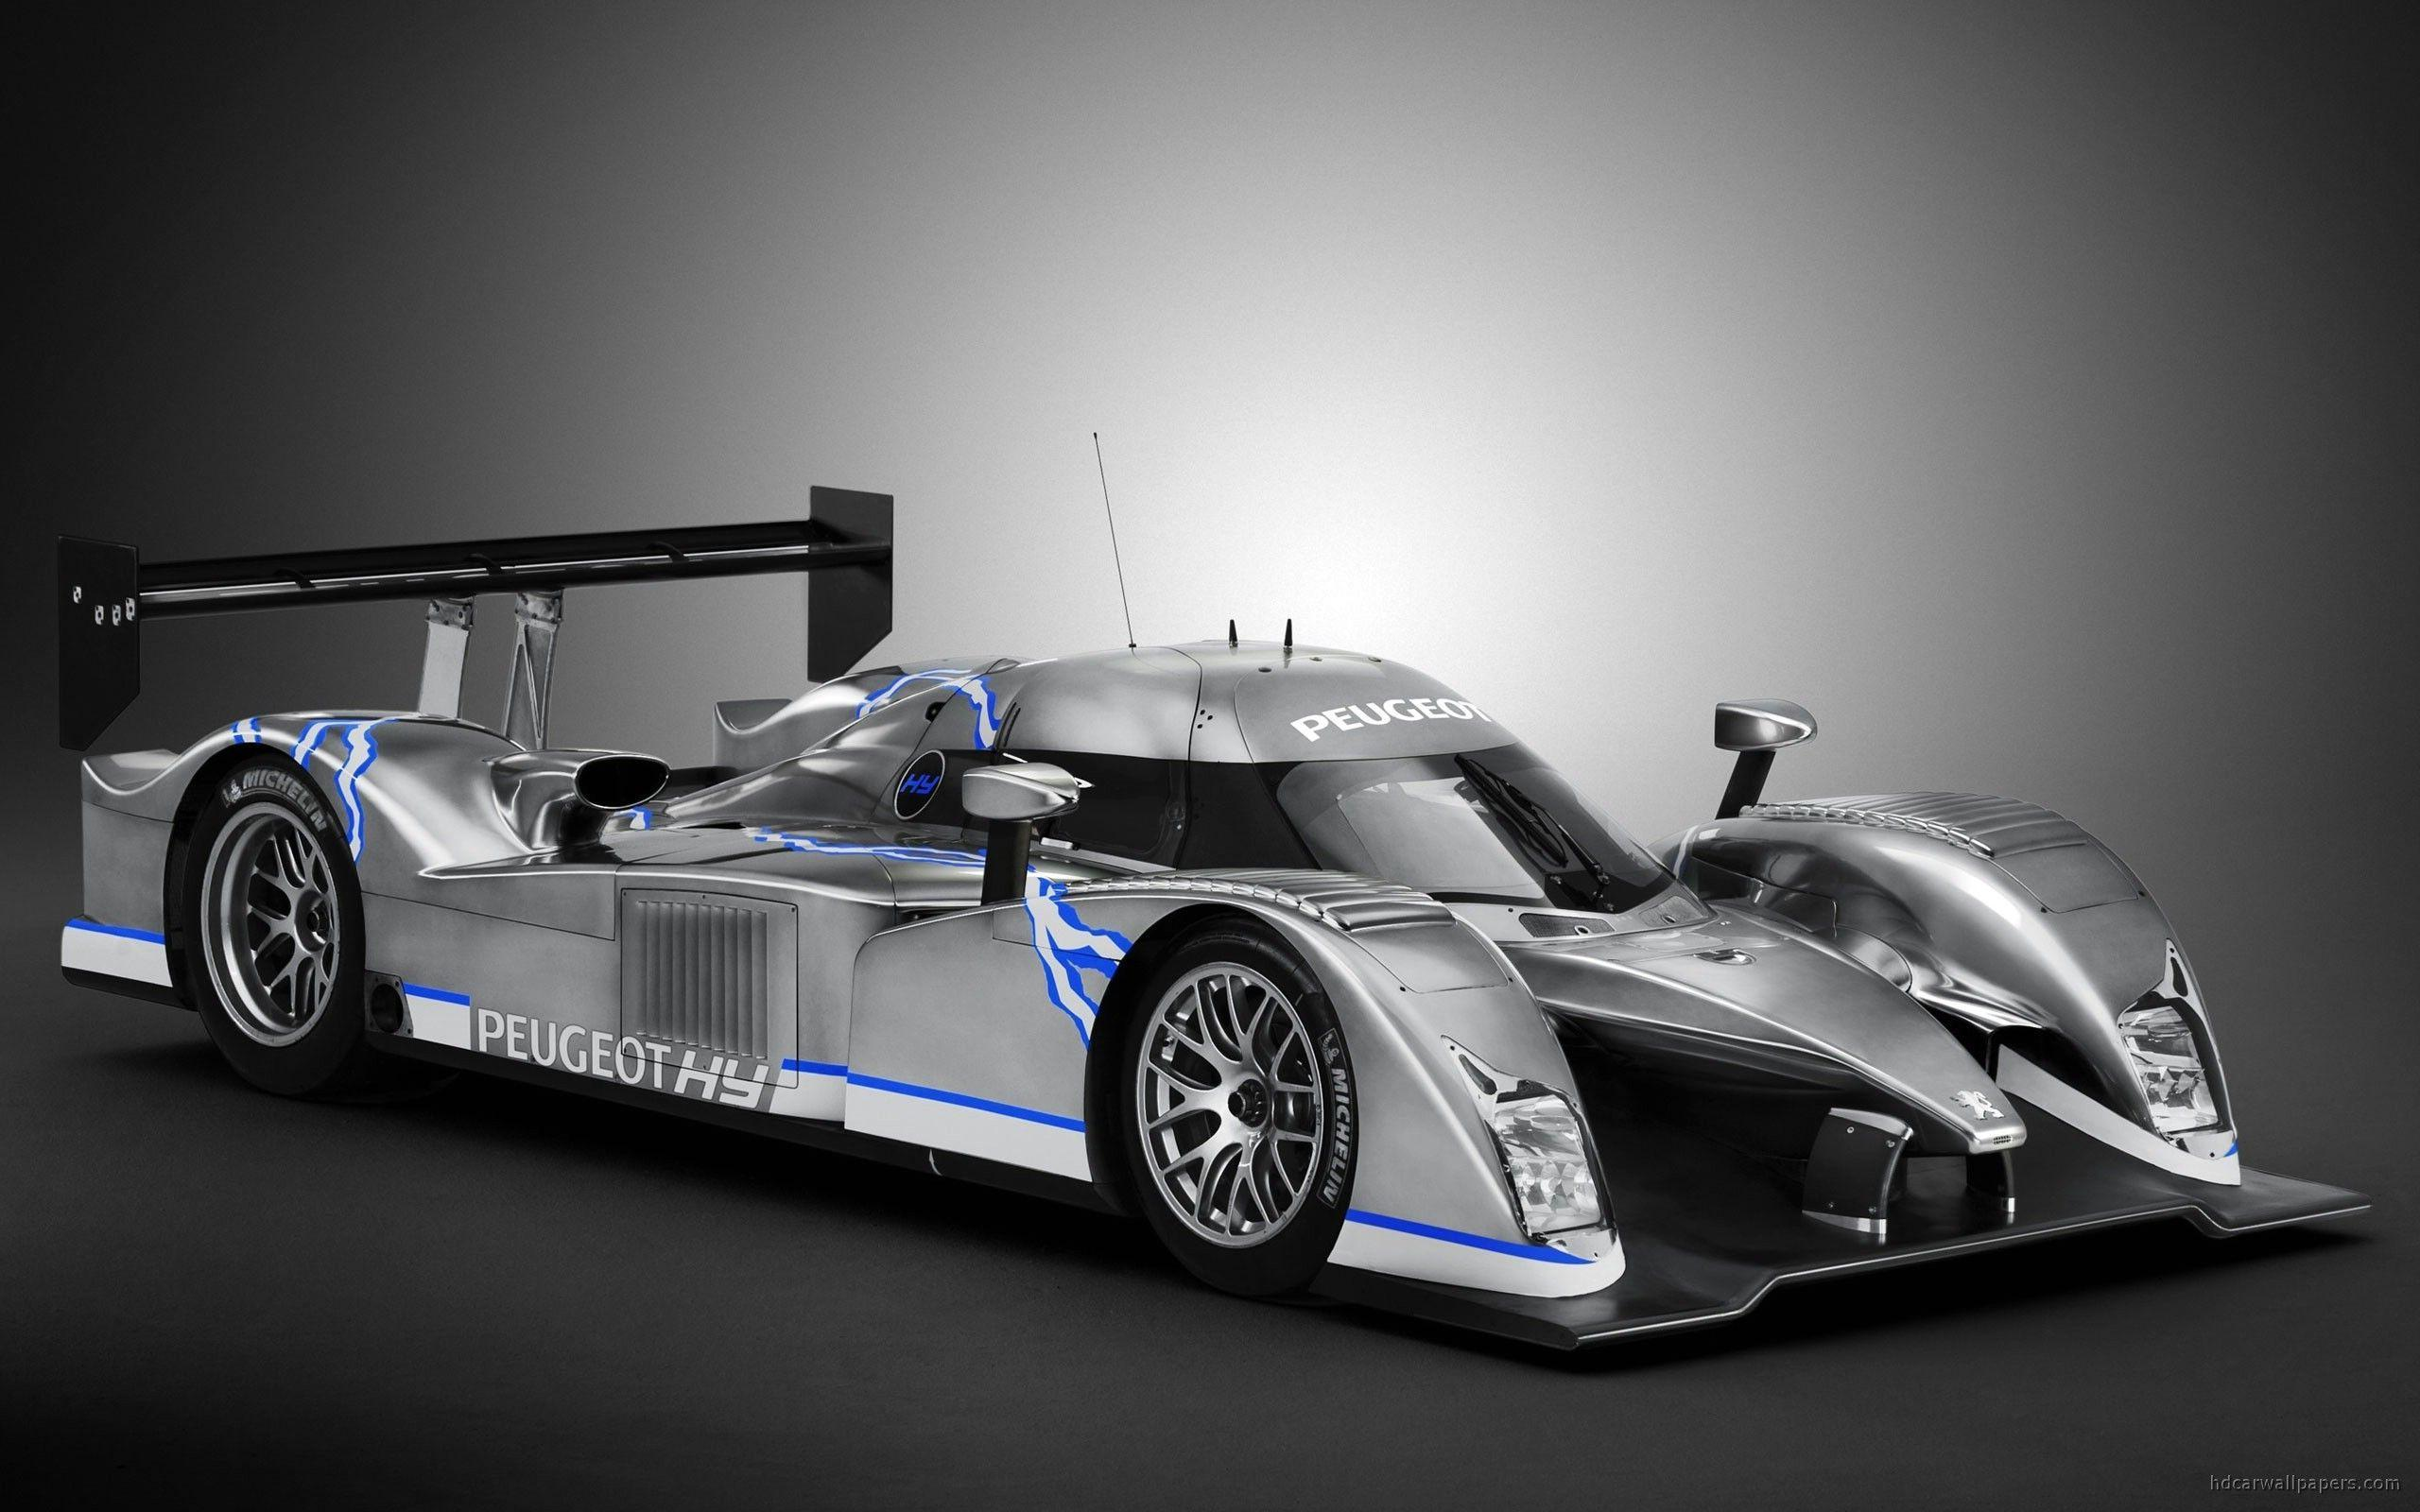 The Peugeot 908 HYbrid Race Wallpaper | HD Car Wallpapers